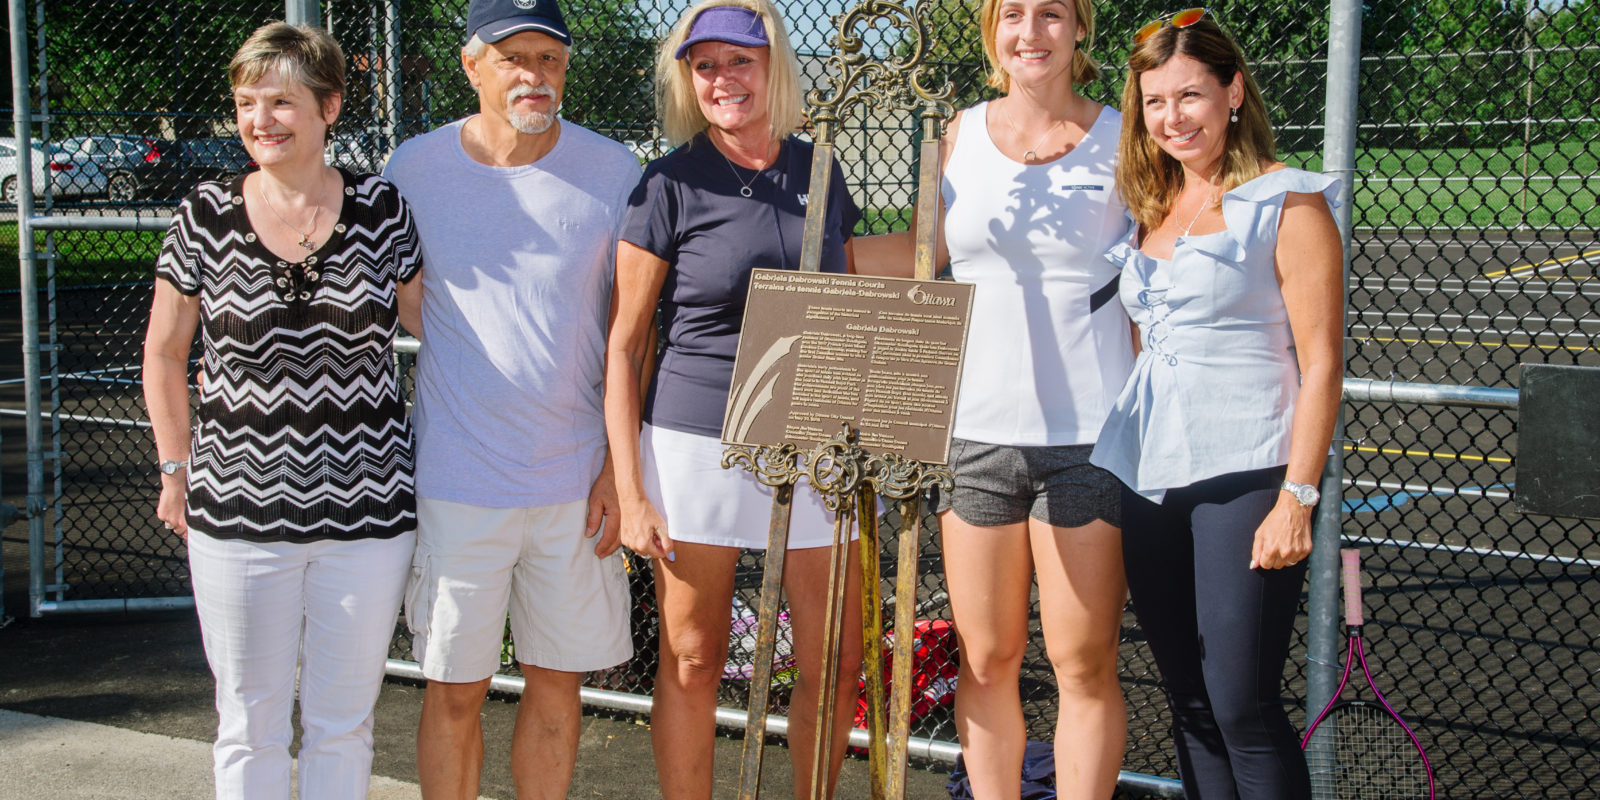 Russell Boyd Tennis Courts Named After Local Tennis Star Gabriela Dabrowski